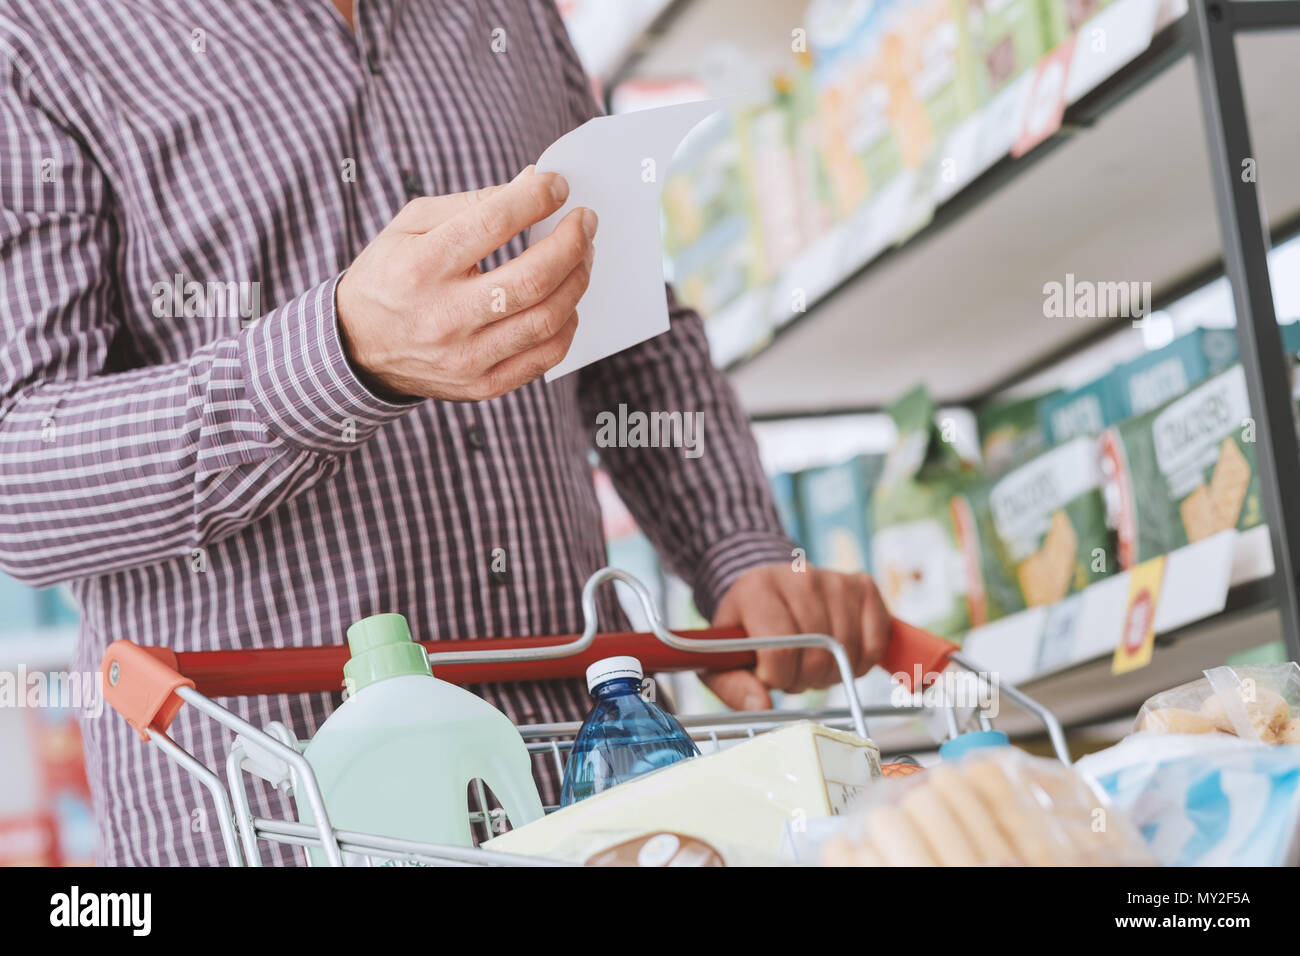 Man doing grocery shopping at the supermarket, he is pushing a cart and checking a list - Stock Image